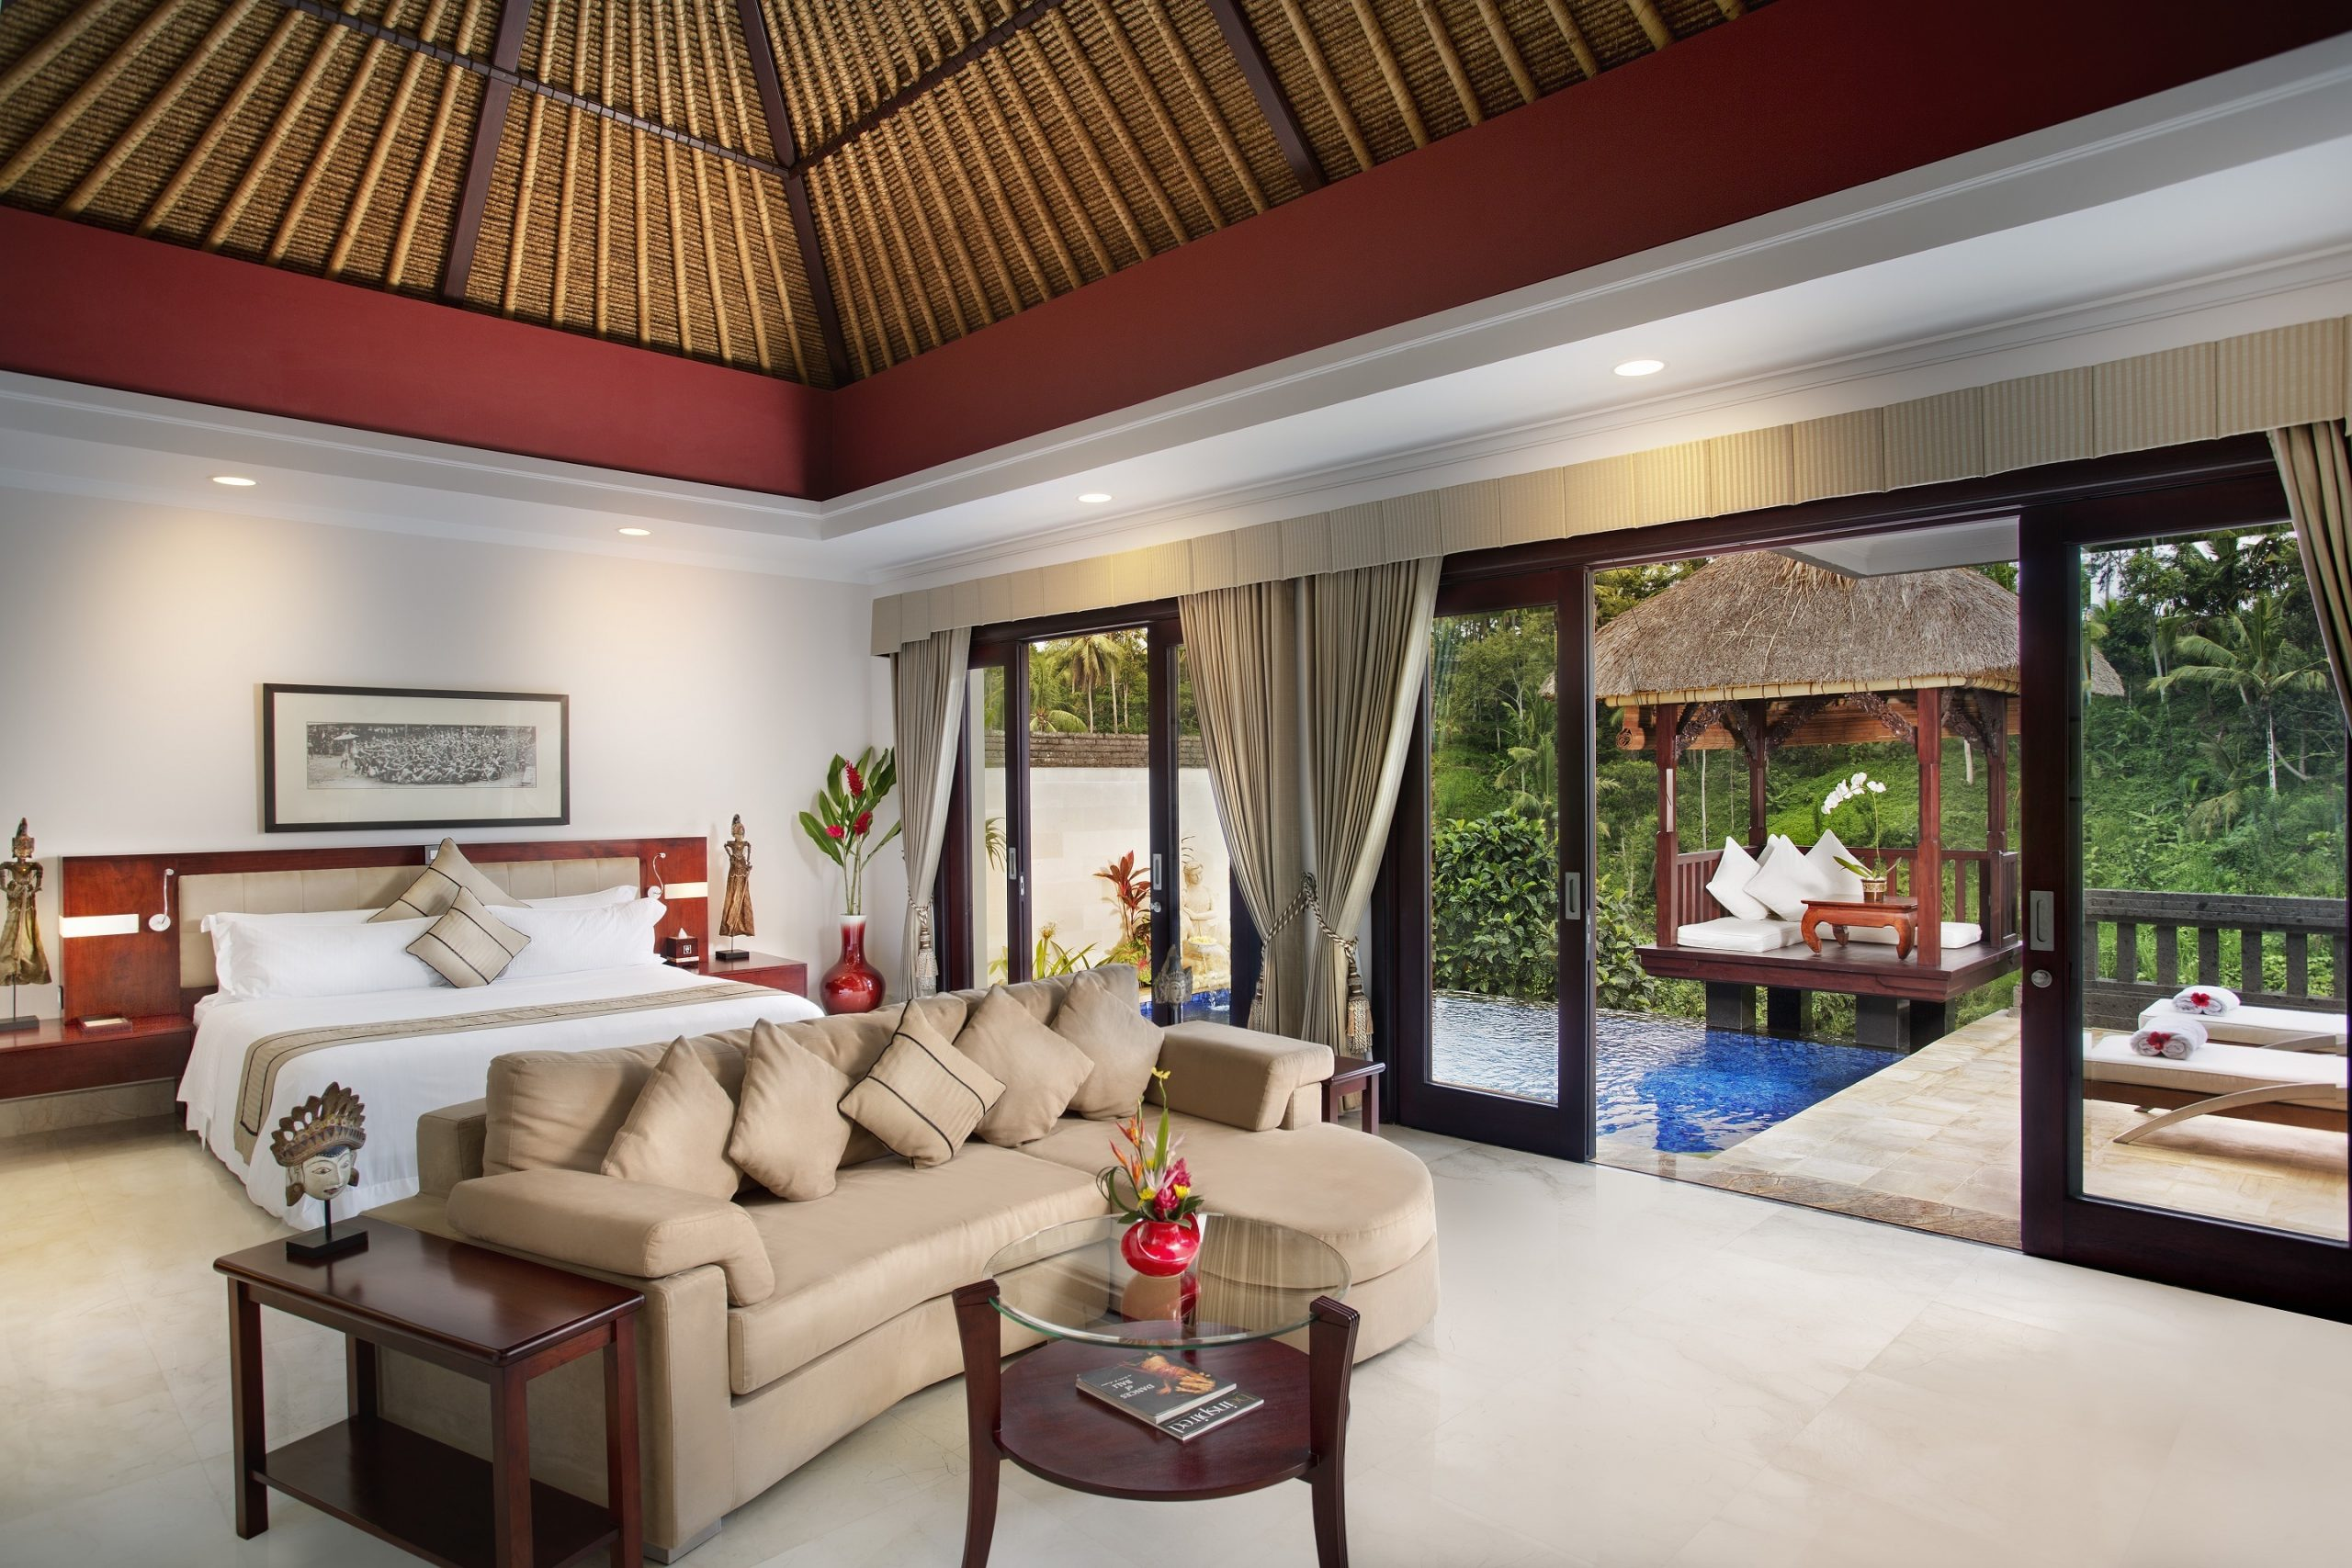 http://highend-traveller.com/viceroy-bali-launches-an-egg-citing-hotel-staycation-deal-for-easter/